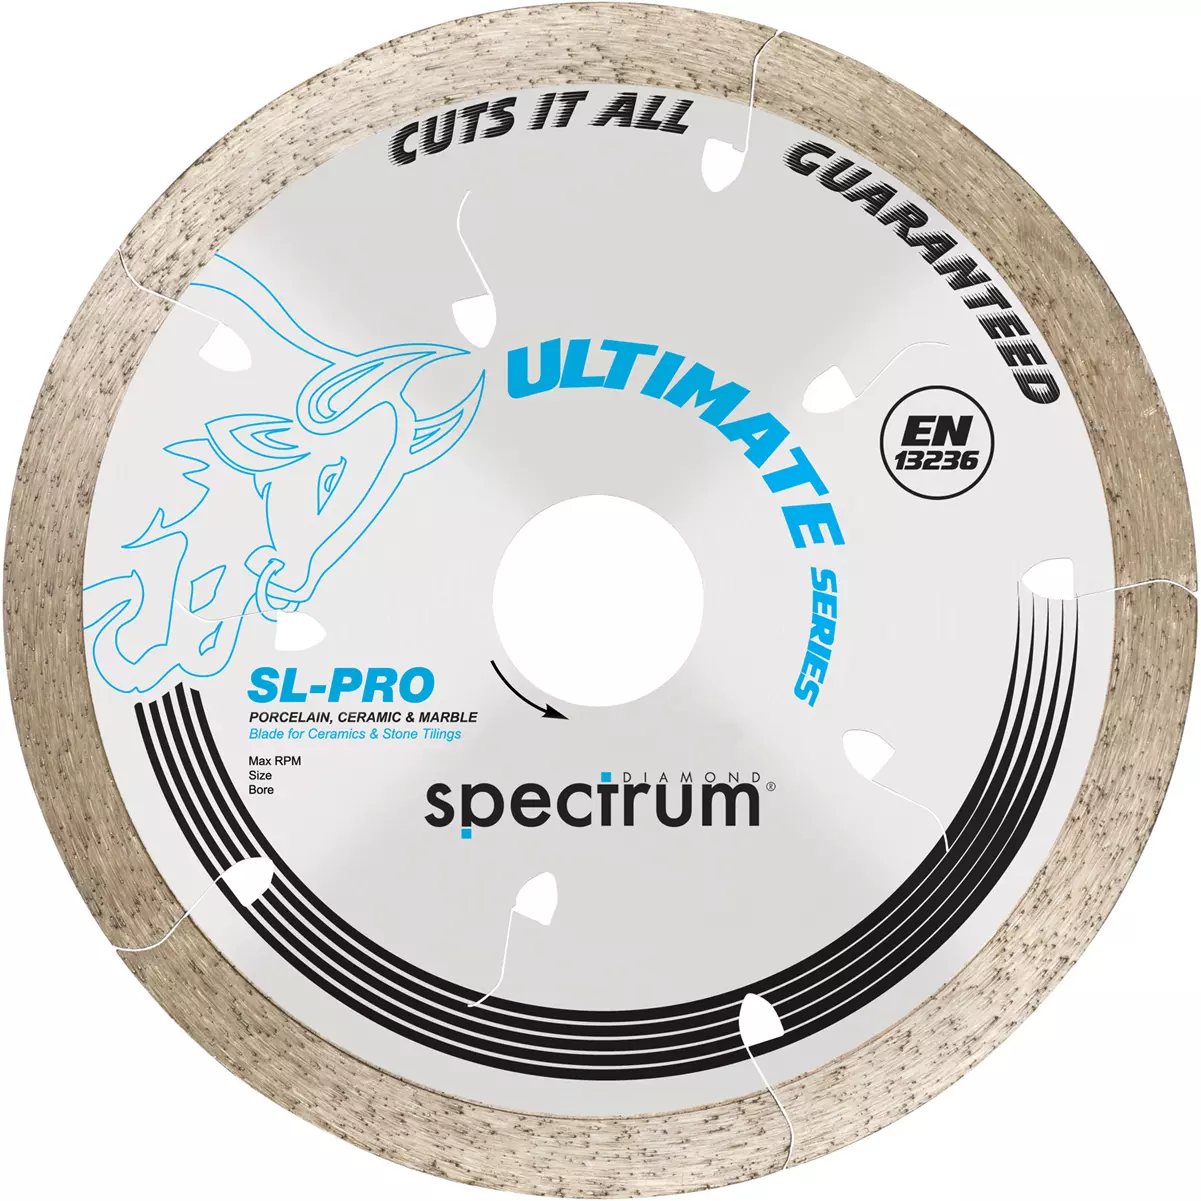 OX SPECTRUM DIAMOND BLADE - SL-PRO ULTIMATE 'CUTS ALL TILES GUARANTEED' 300 X 20MM